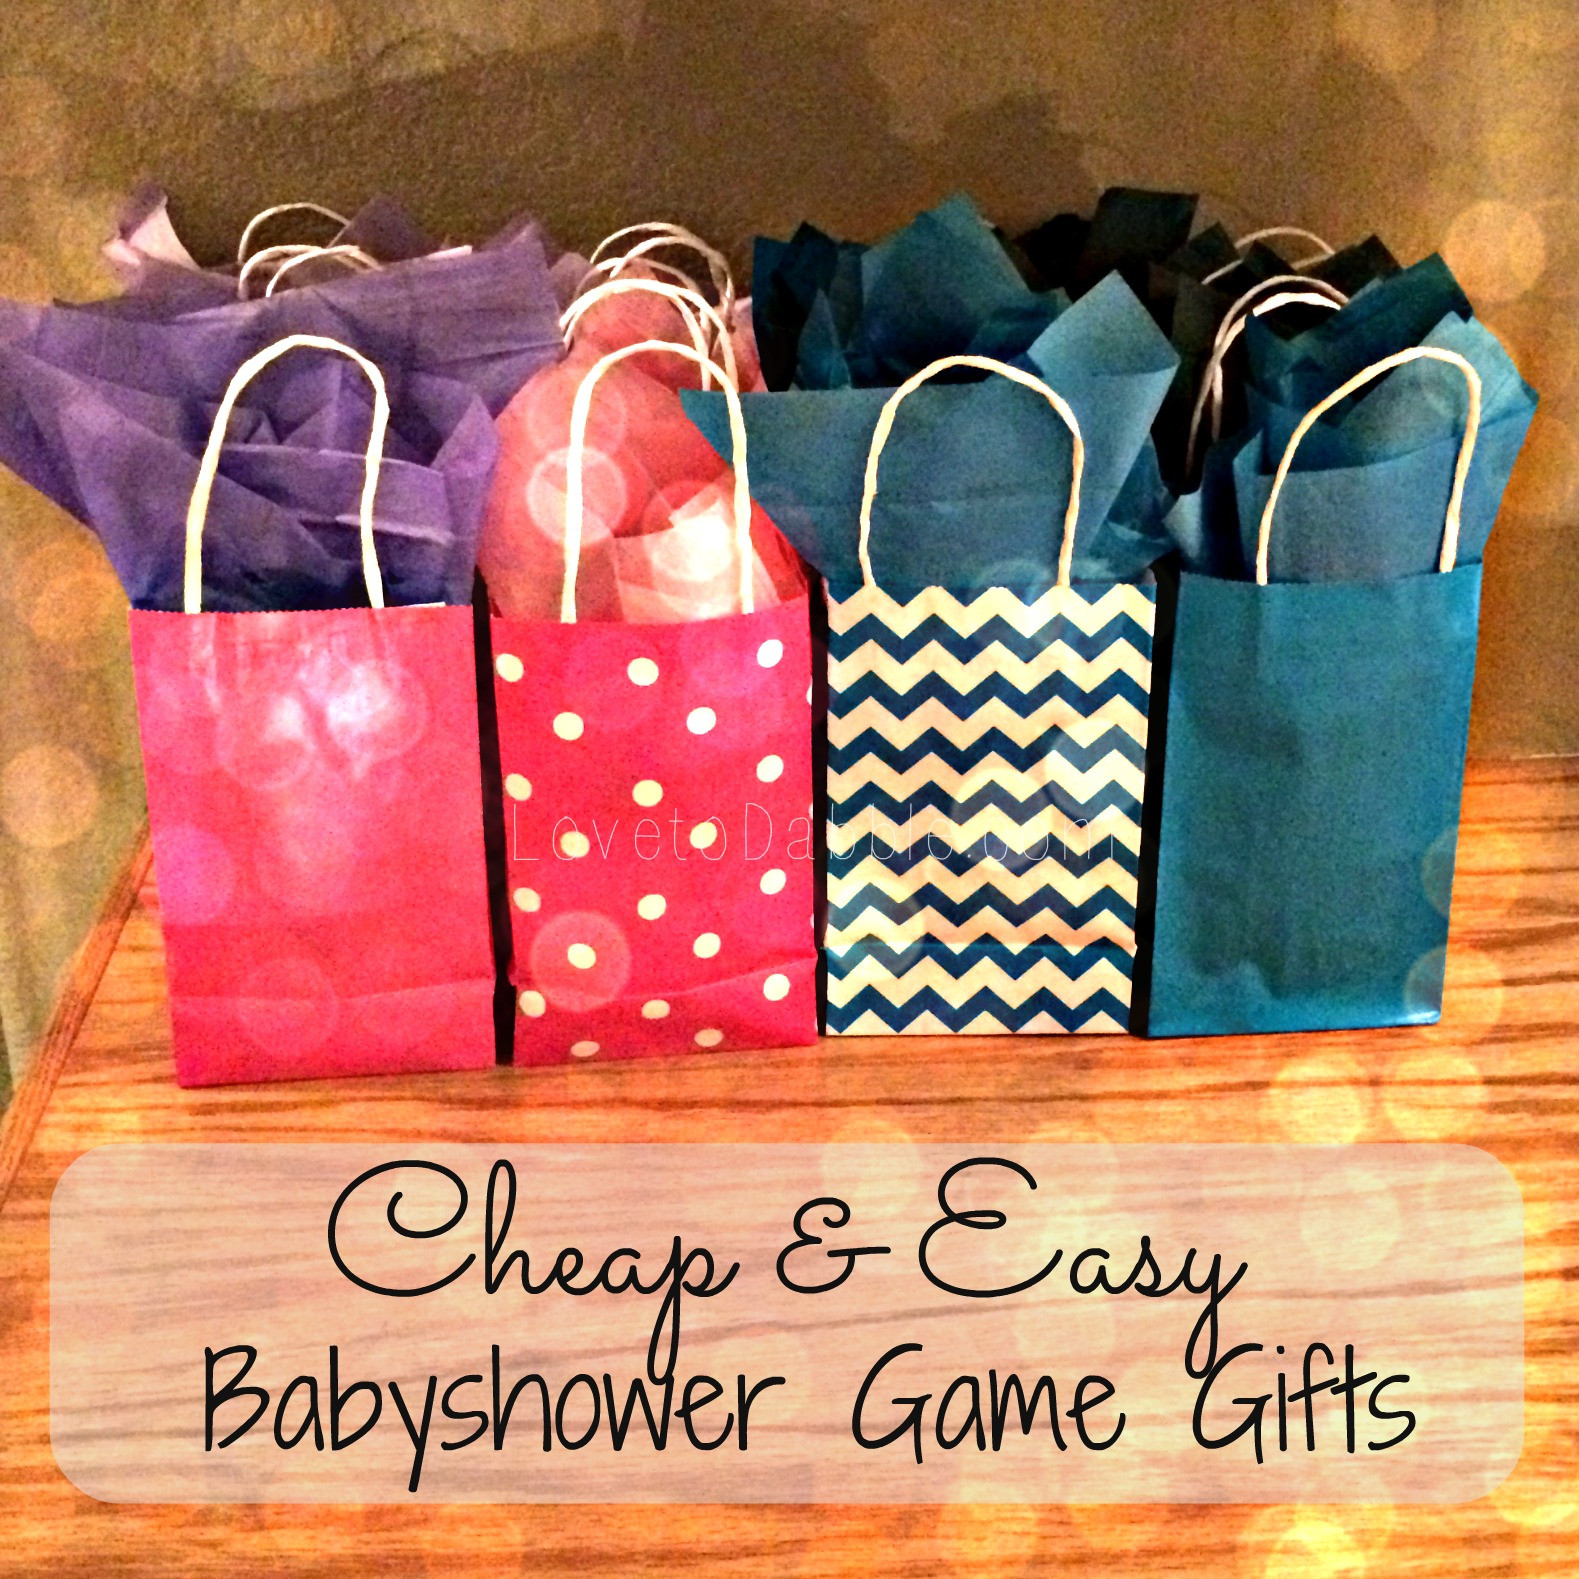 Best ideas about Gift Ideas For Baby Shower Games . Save or Pin List Baby Shower Image Now.